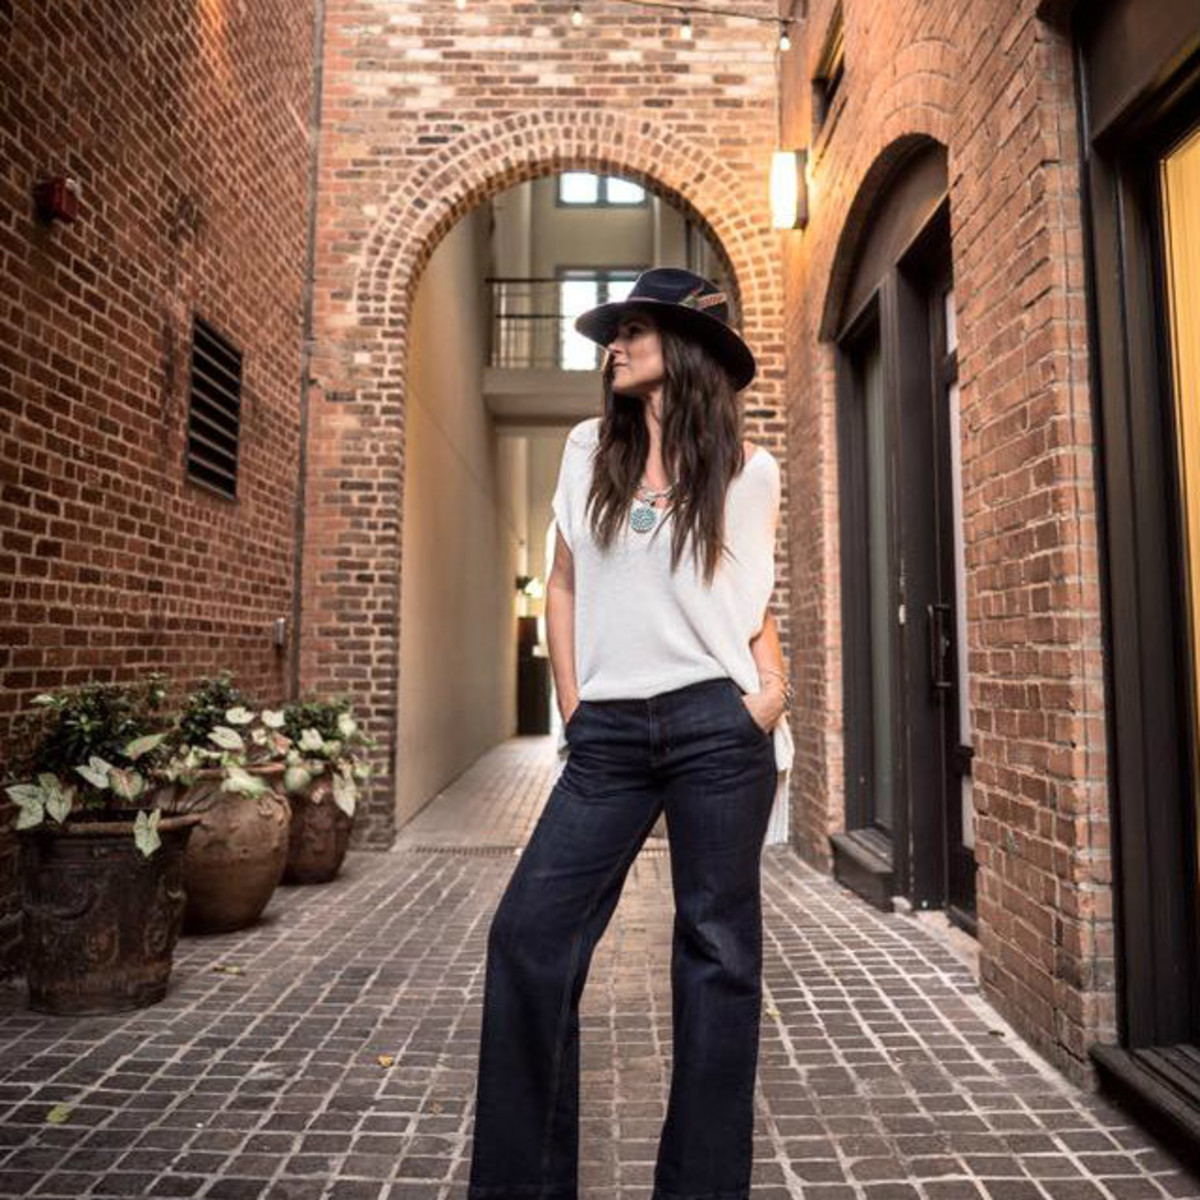 Coyote Urban Boutique in Fort Worth